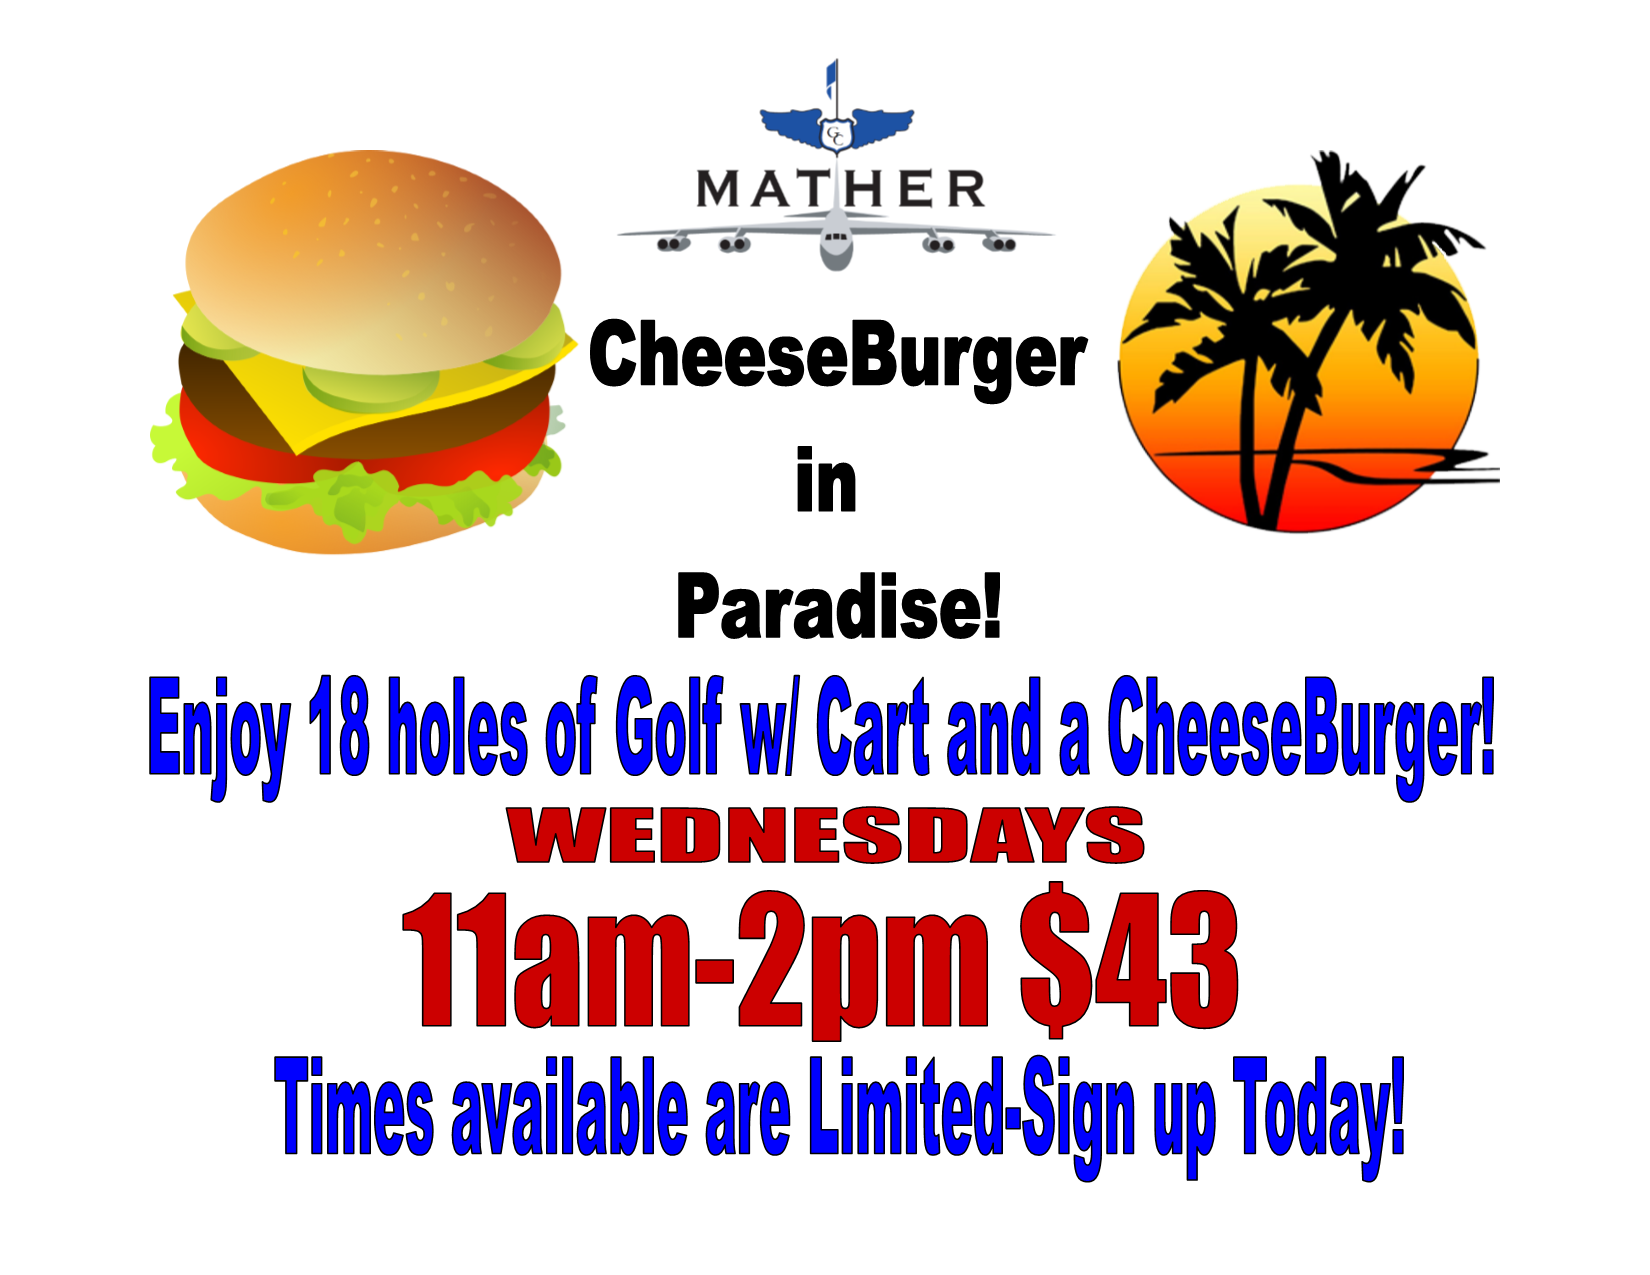 Cheeseburger in paradise promo 2017